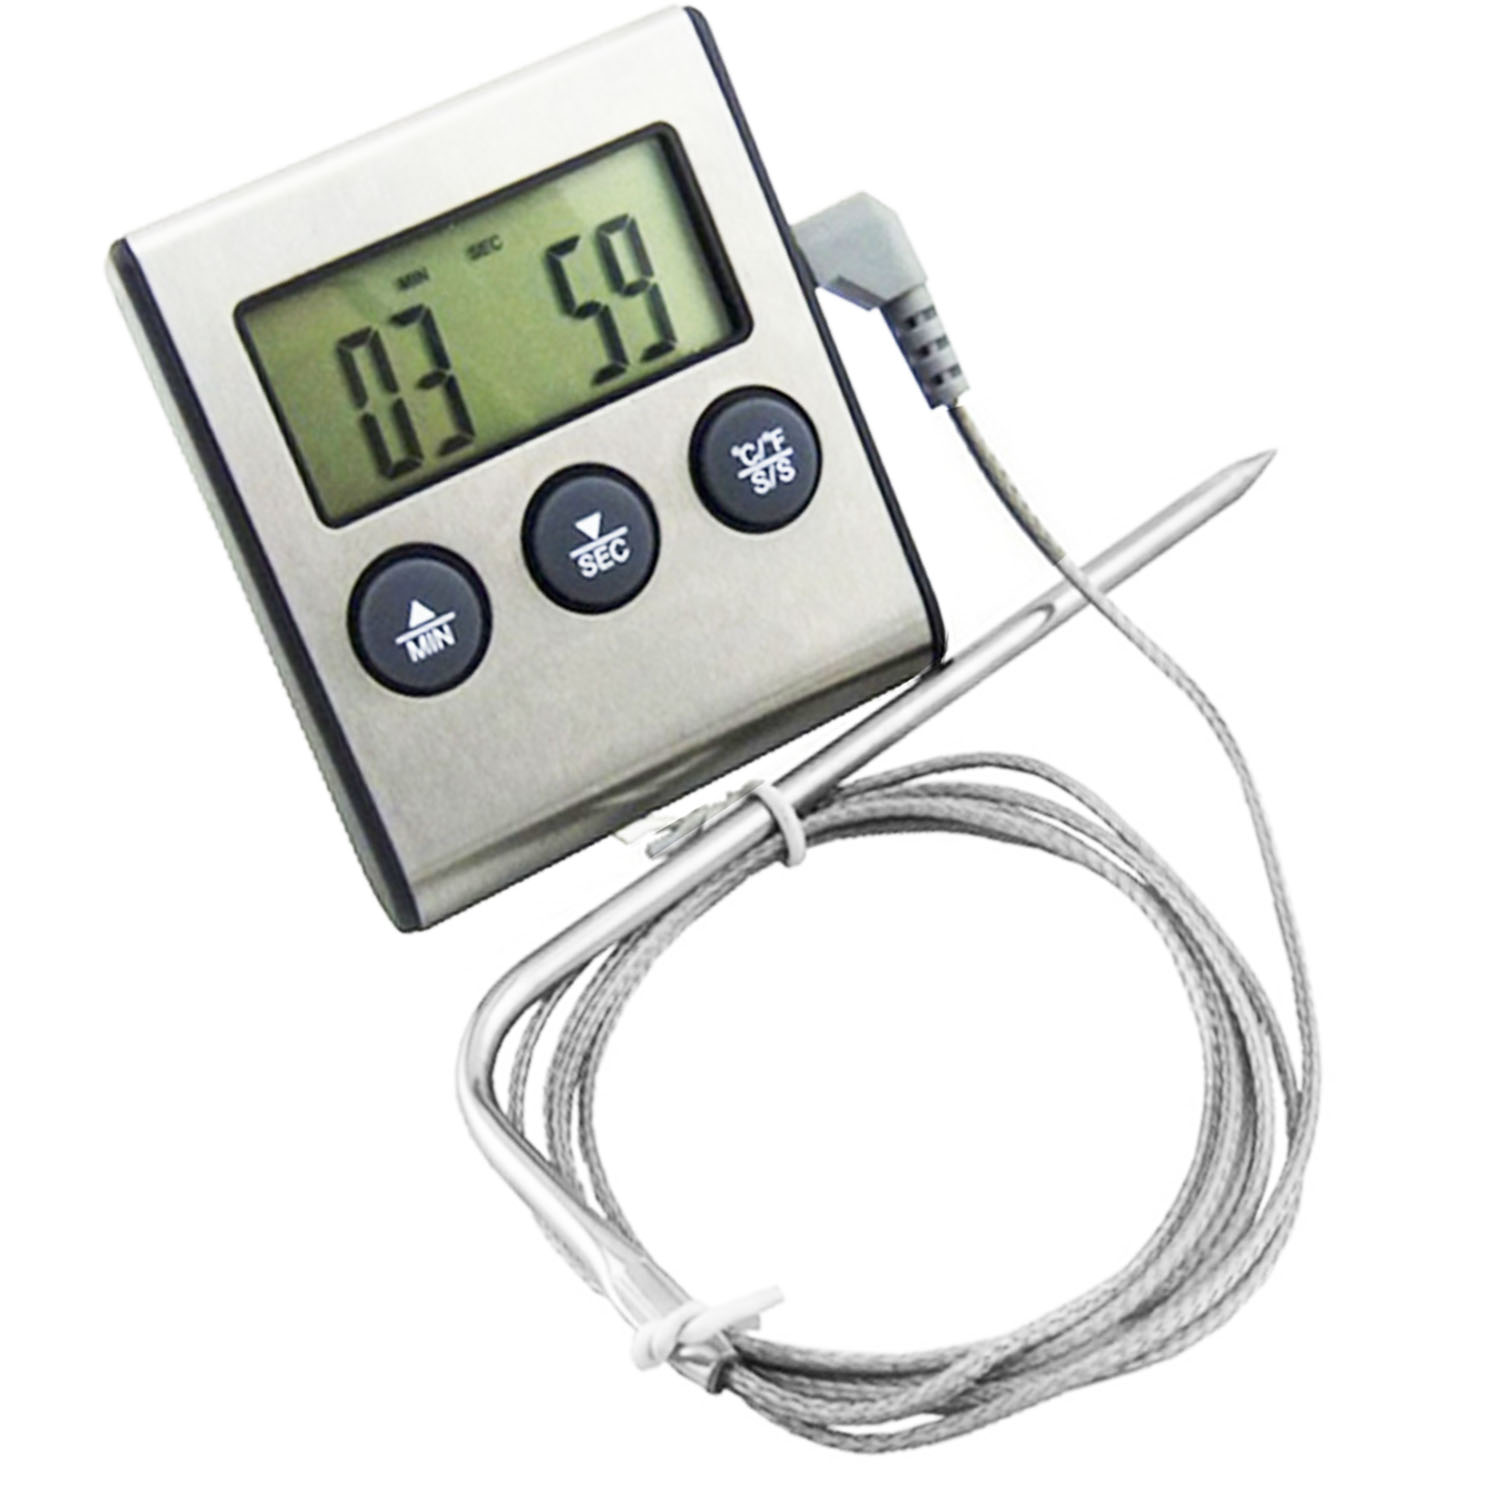 Thermometer with Detachable Probe